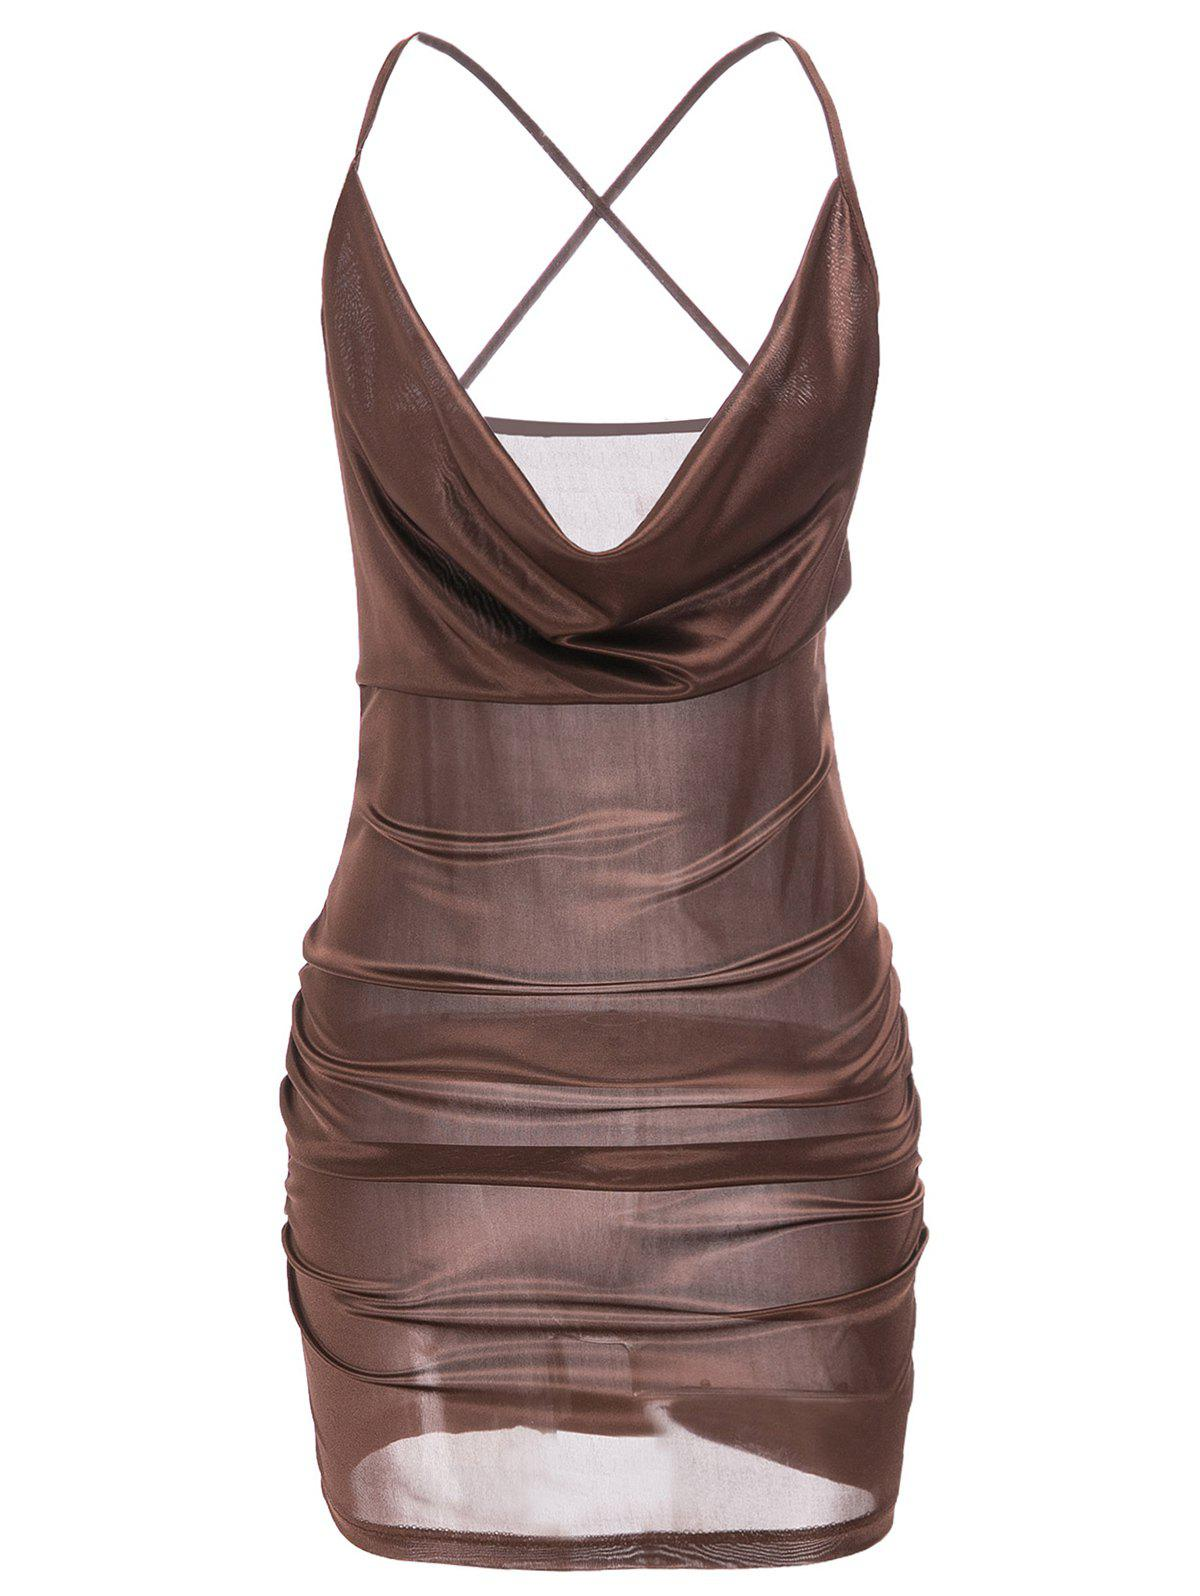 Sexy Plunging Neck Spaghetti Strap Women's Dress - BROWN XL